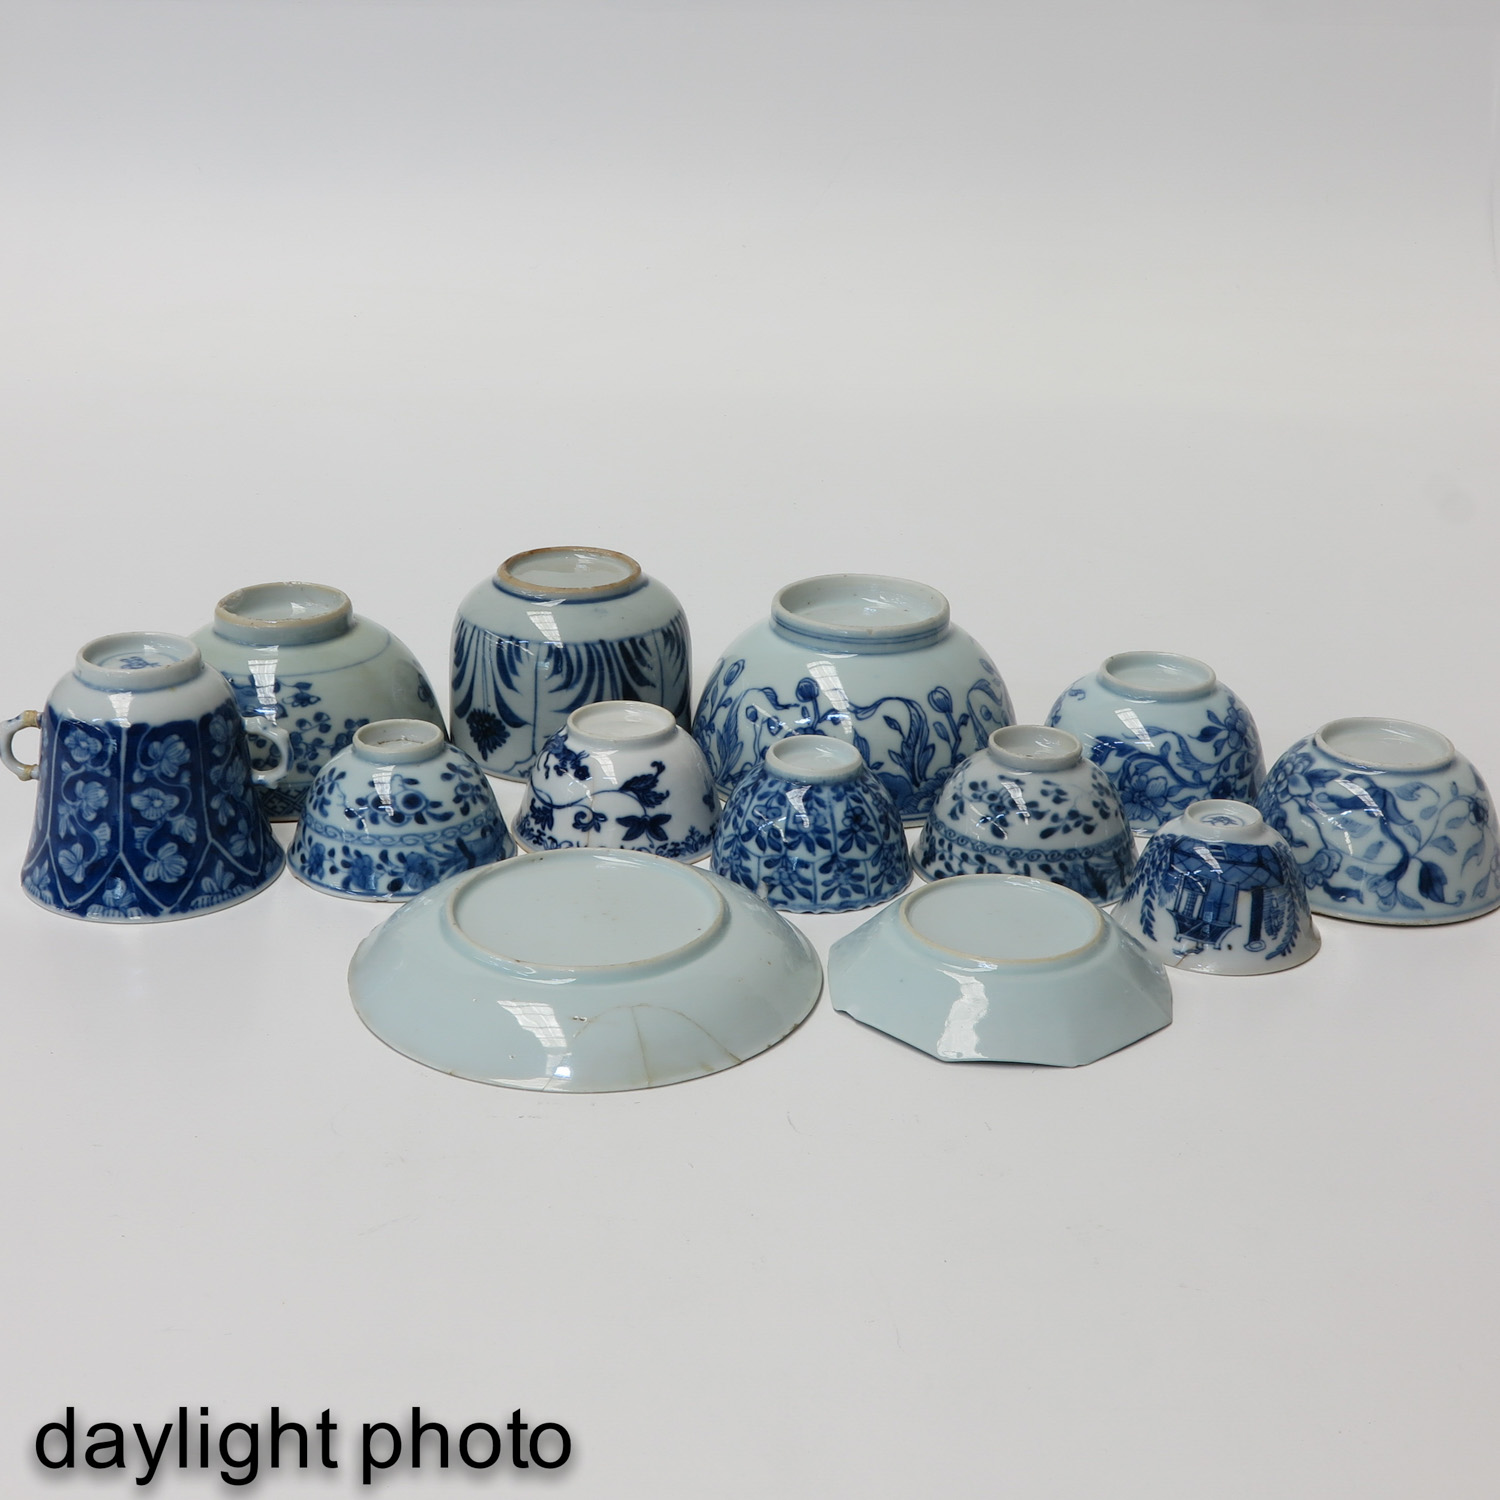 A Diverse Collection of Porcelain - Image 8 of 9